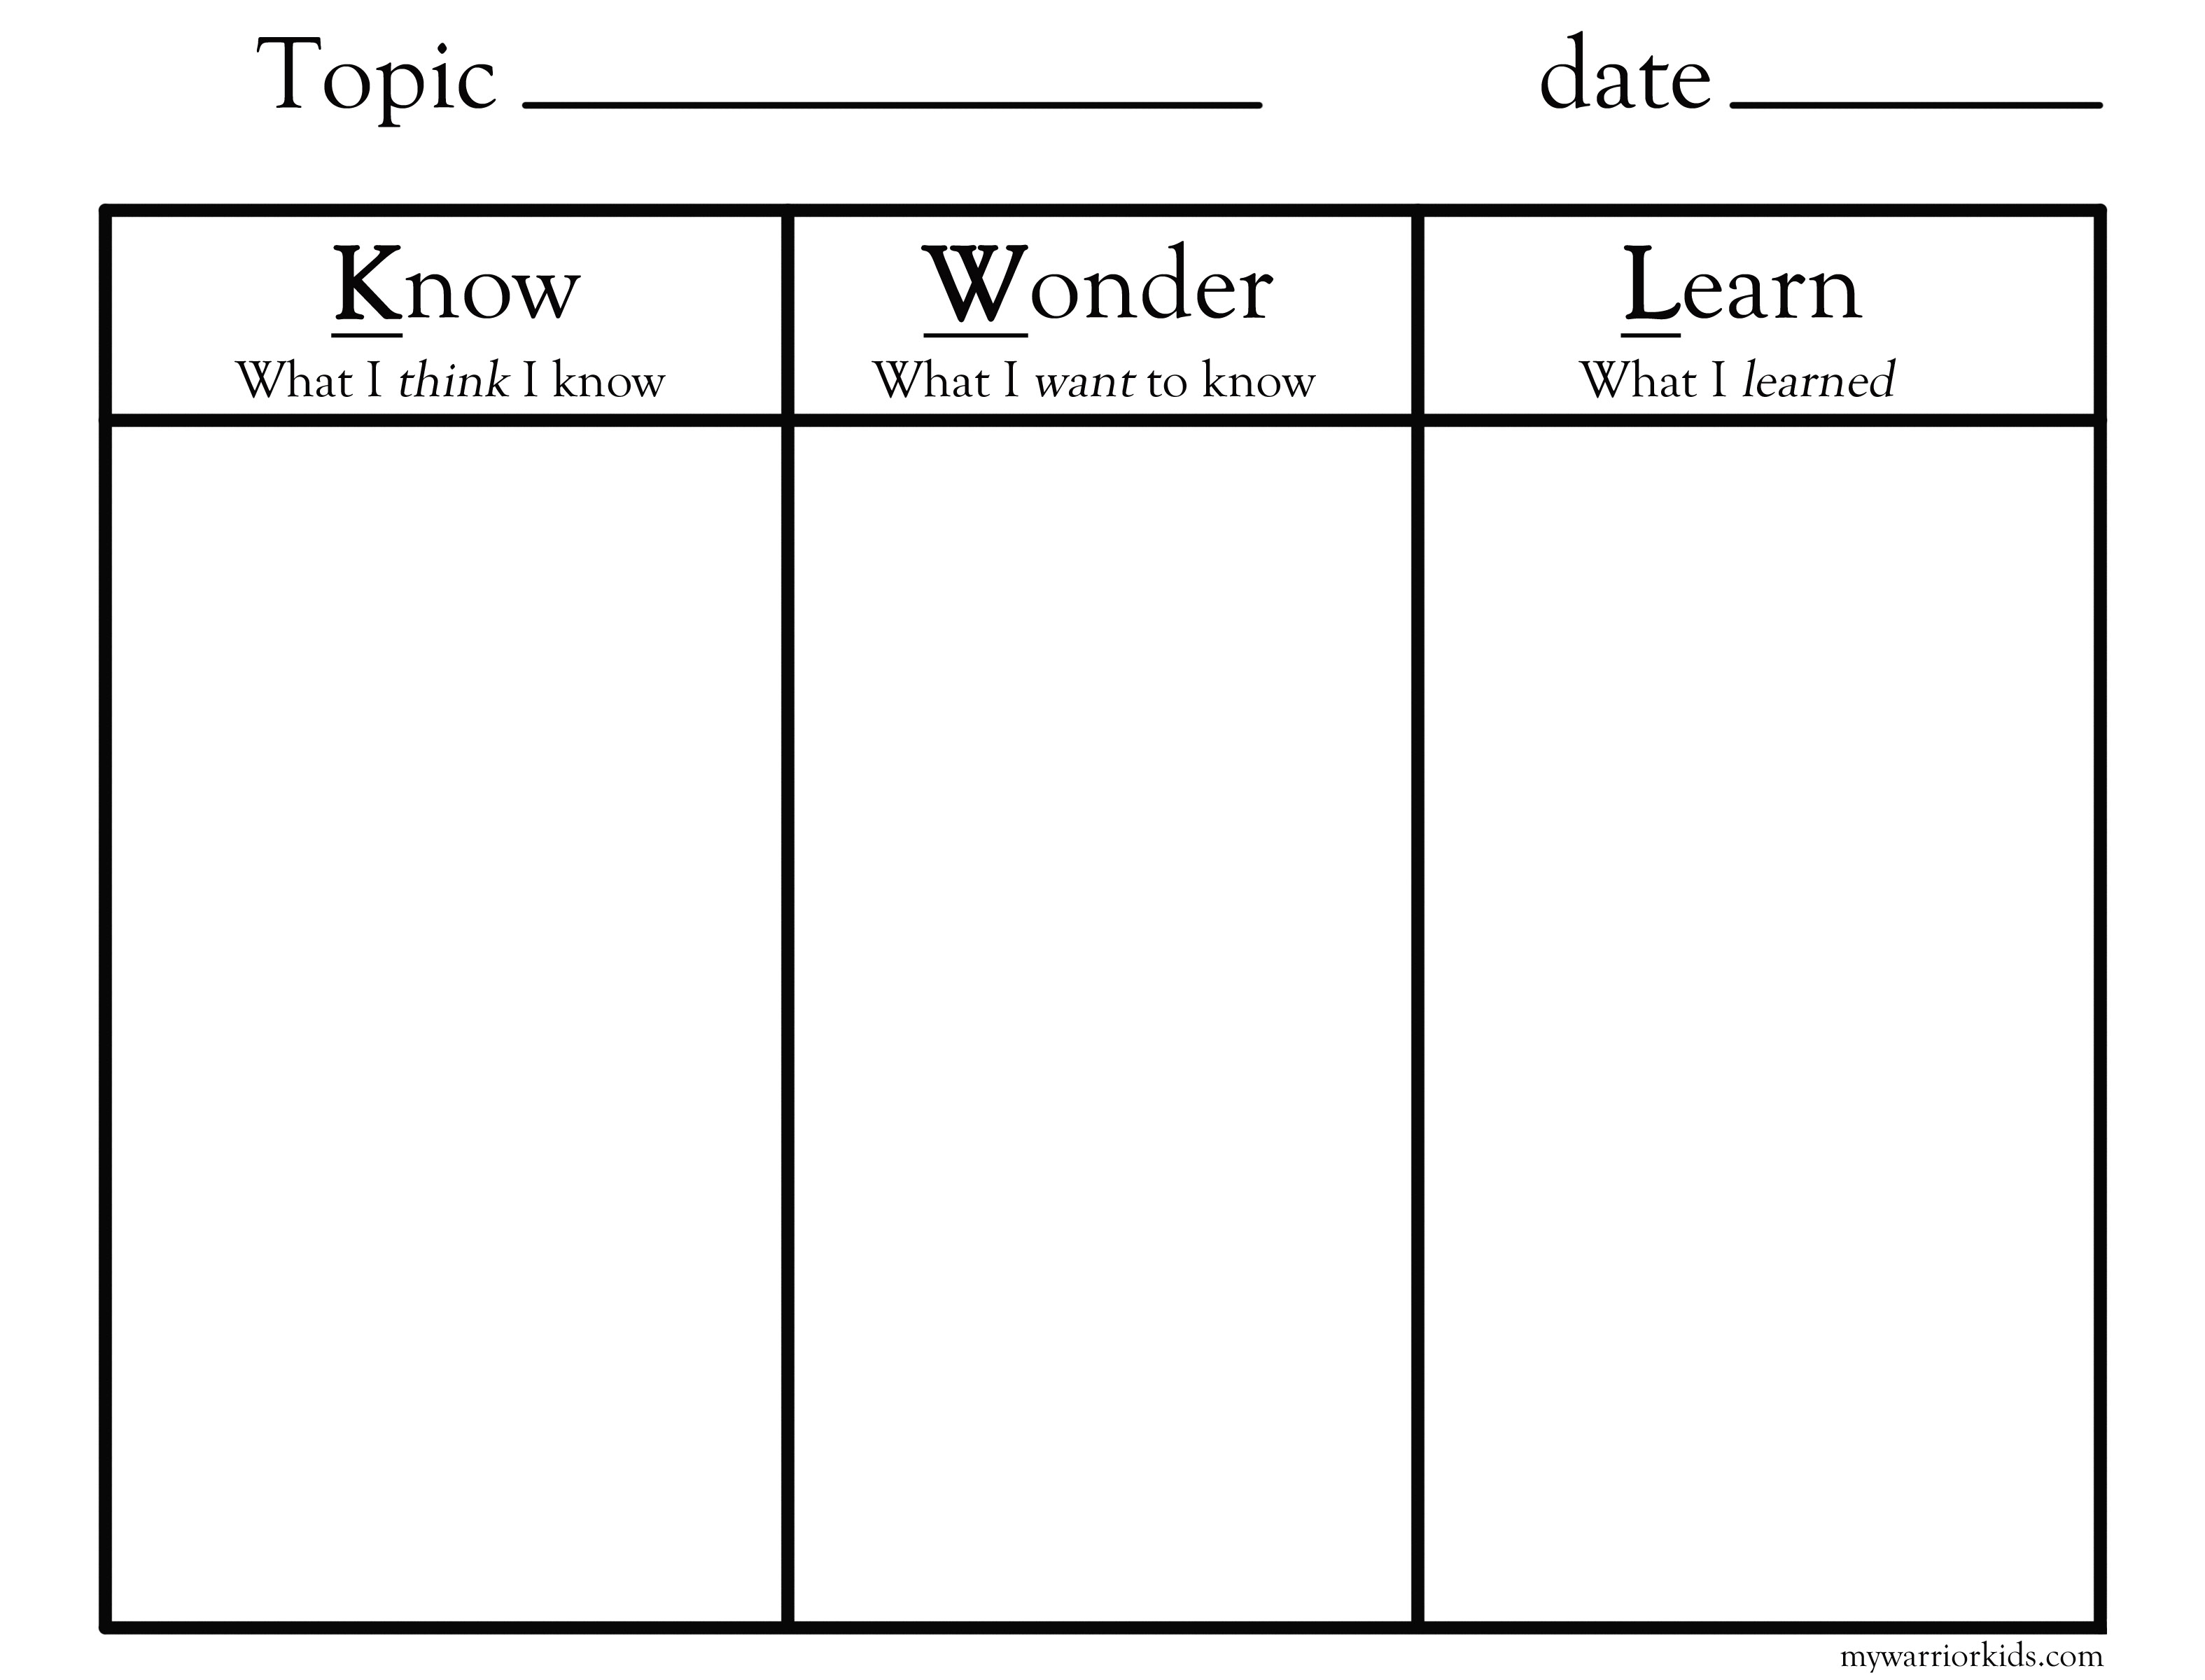 Sample Chart Templates kwl chart template word document : Kwl Template Copy Pictures